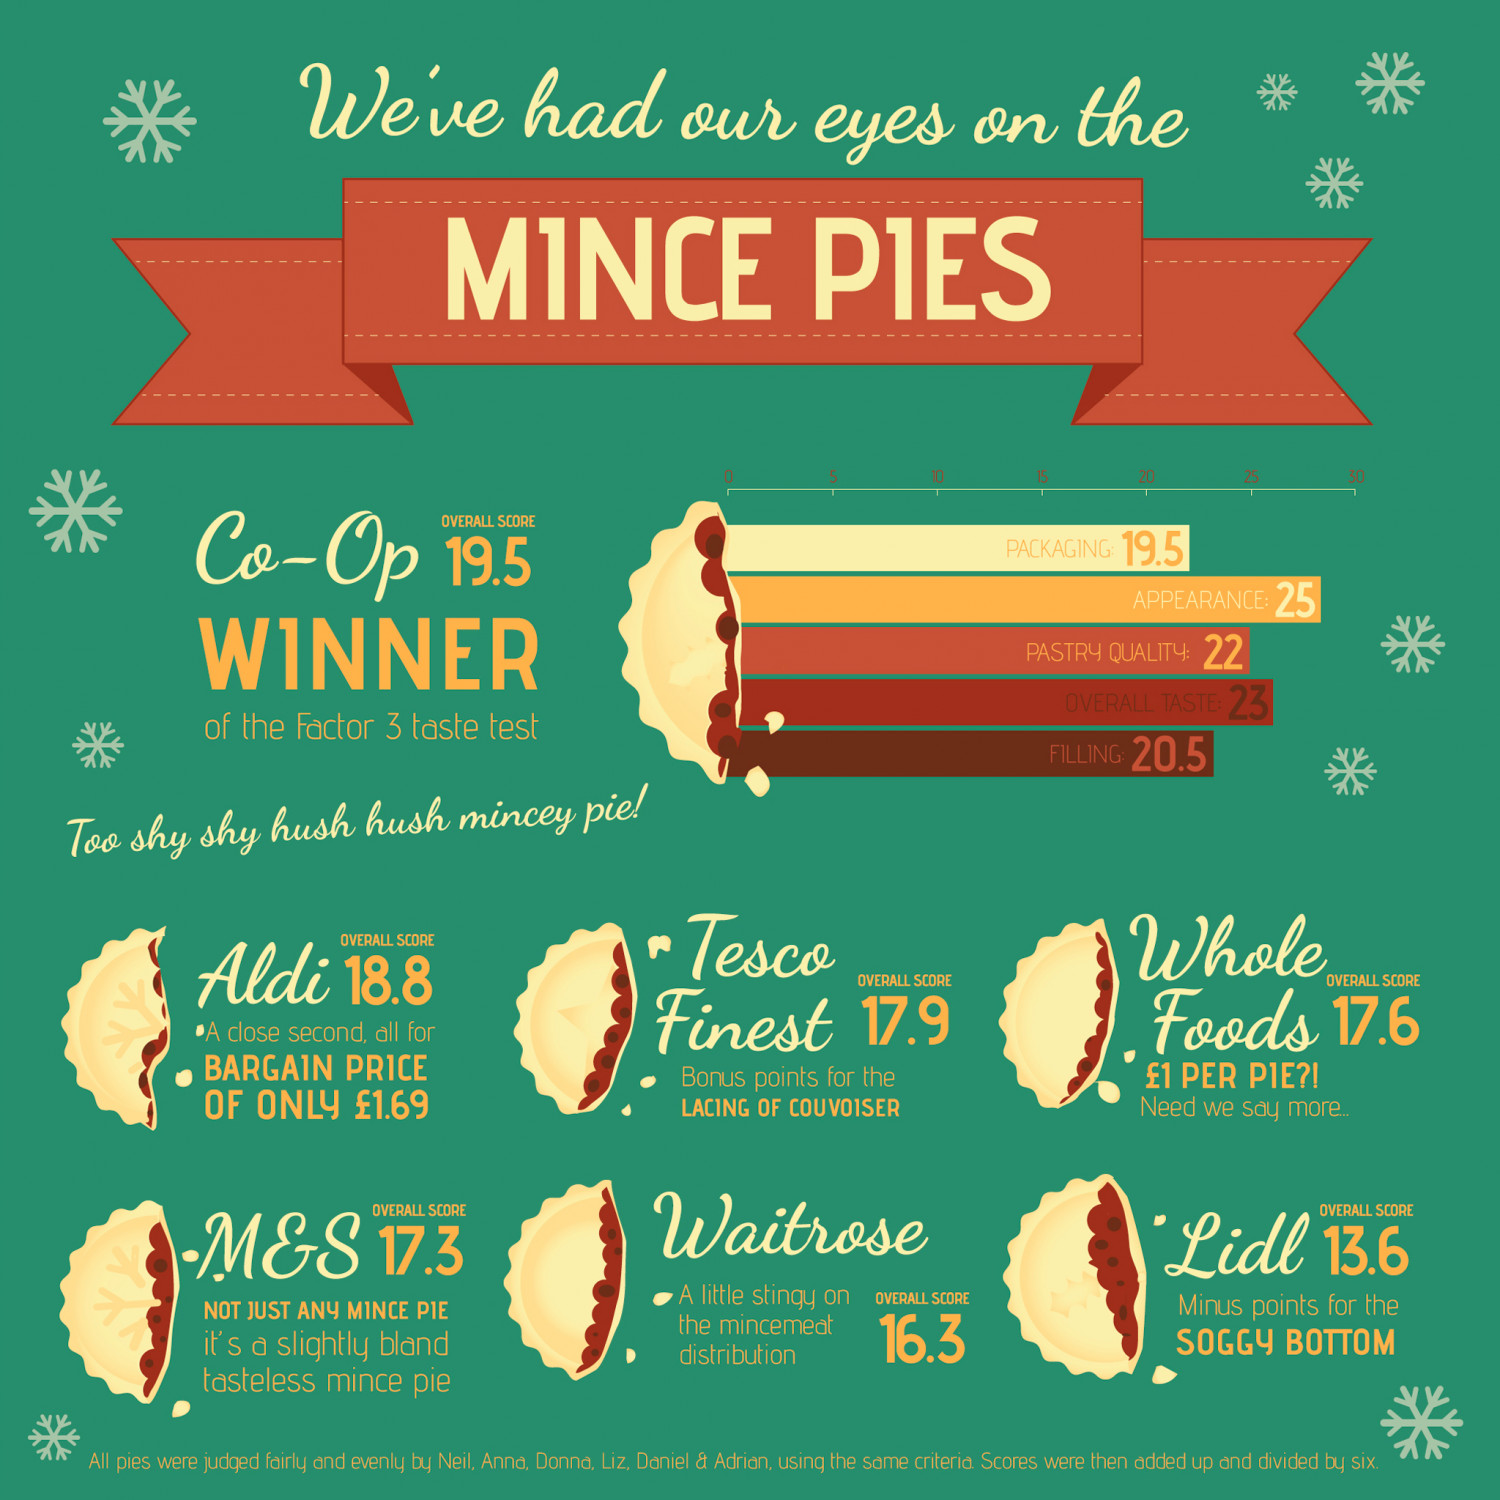 Mince Pie Review 2013 Infographic